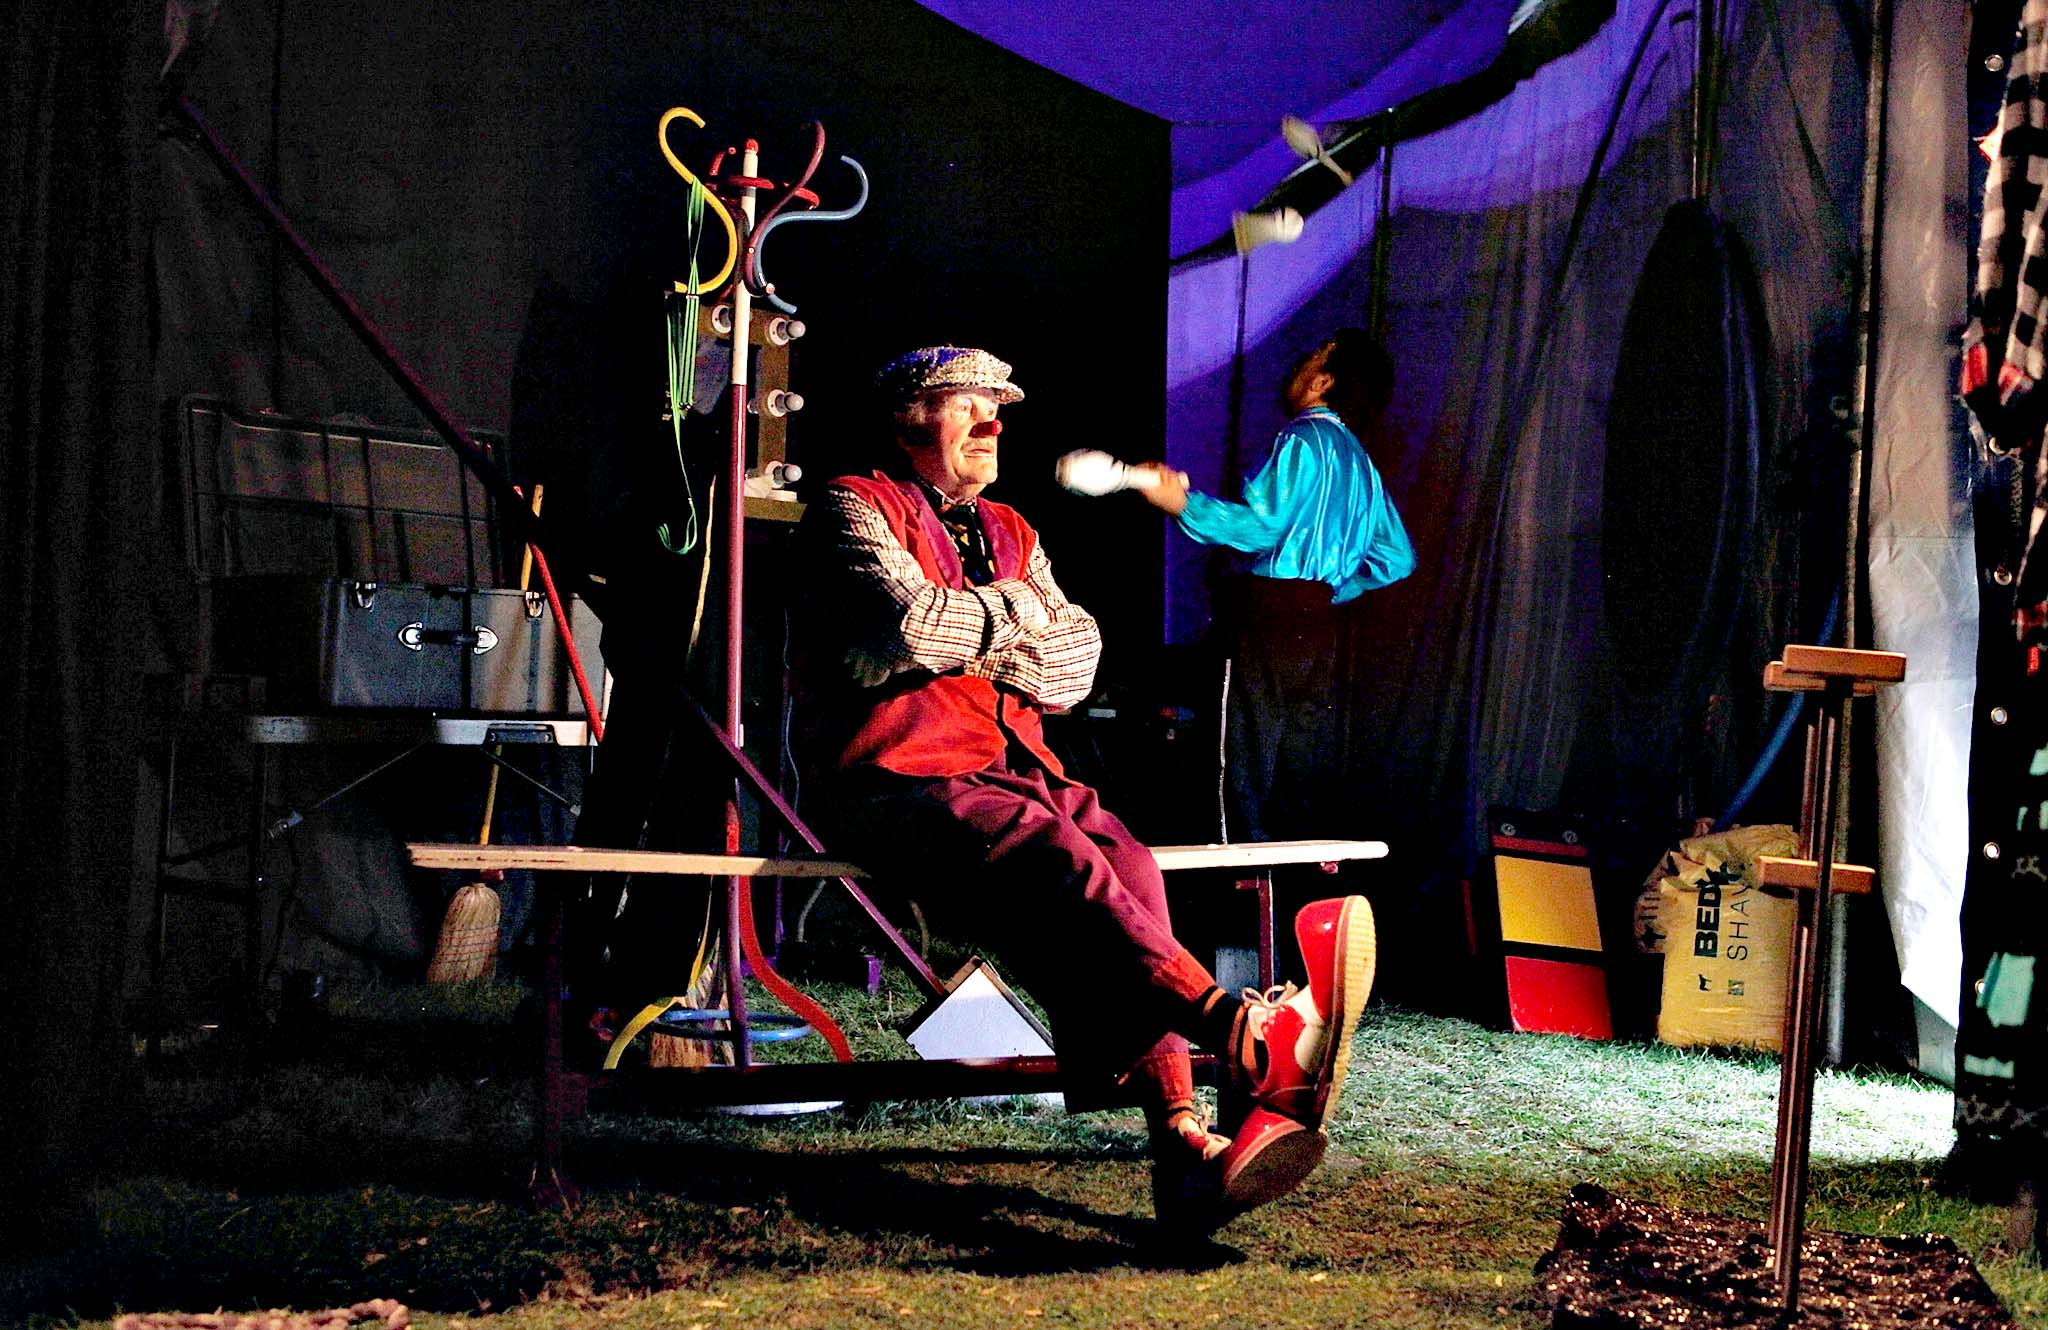 Charlie the Clown played by 75 year old Karl Brenner, currently the oldest working professional clown in the world, waits backstage in Huntingdon, England. Mr Fips Wonder Circus is a small, family run circus, who during their latest season will travel up the east of England until their season draws to a close in November. They are a company of around 20 performers, all family and friends from the circus community and their youngest member is 12 years old and their oldest is 75 years old. The troupe formed three years ago when Jan Erik Brenner and his wife Carolyn decided that they wanted to return the circus to the intimacy and magic of their childhood memories, and now play to audiences of between 100 and 500 adults and children.